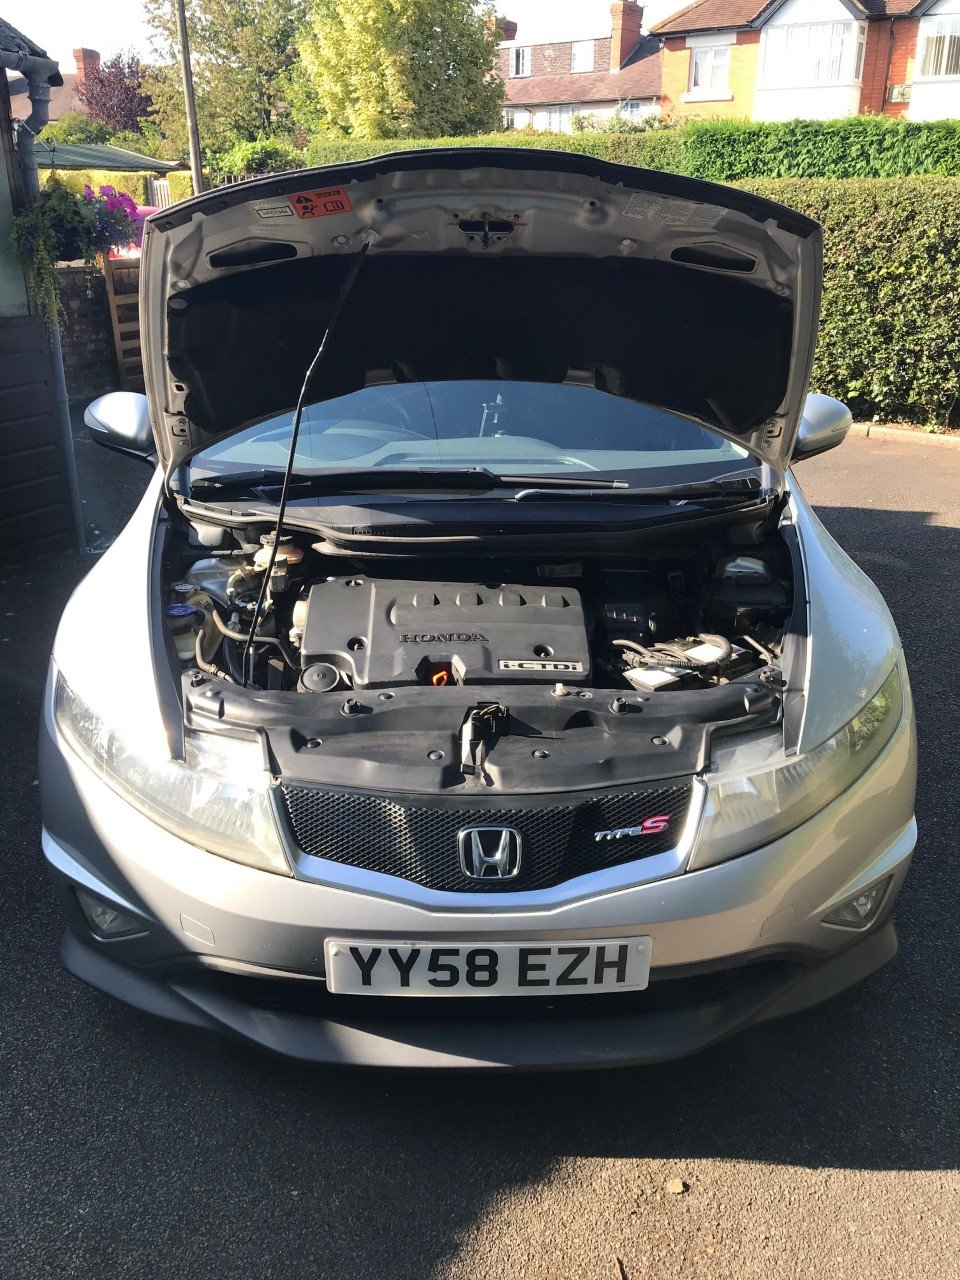 2008 Honda Civic 2.2 i-CTDi Type S GT 3dr Diesel For Sale (picture 5 of 6)